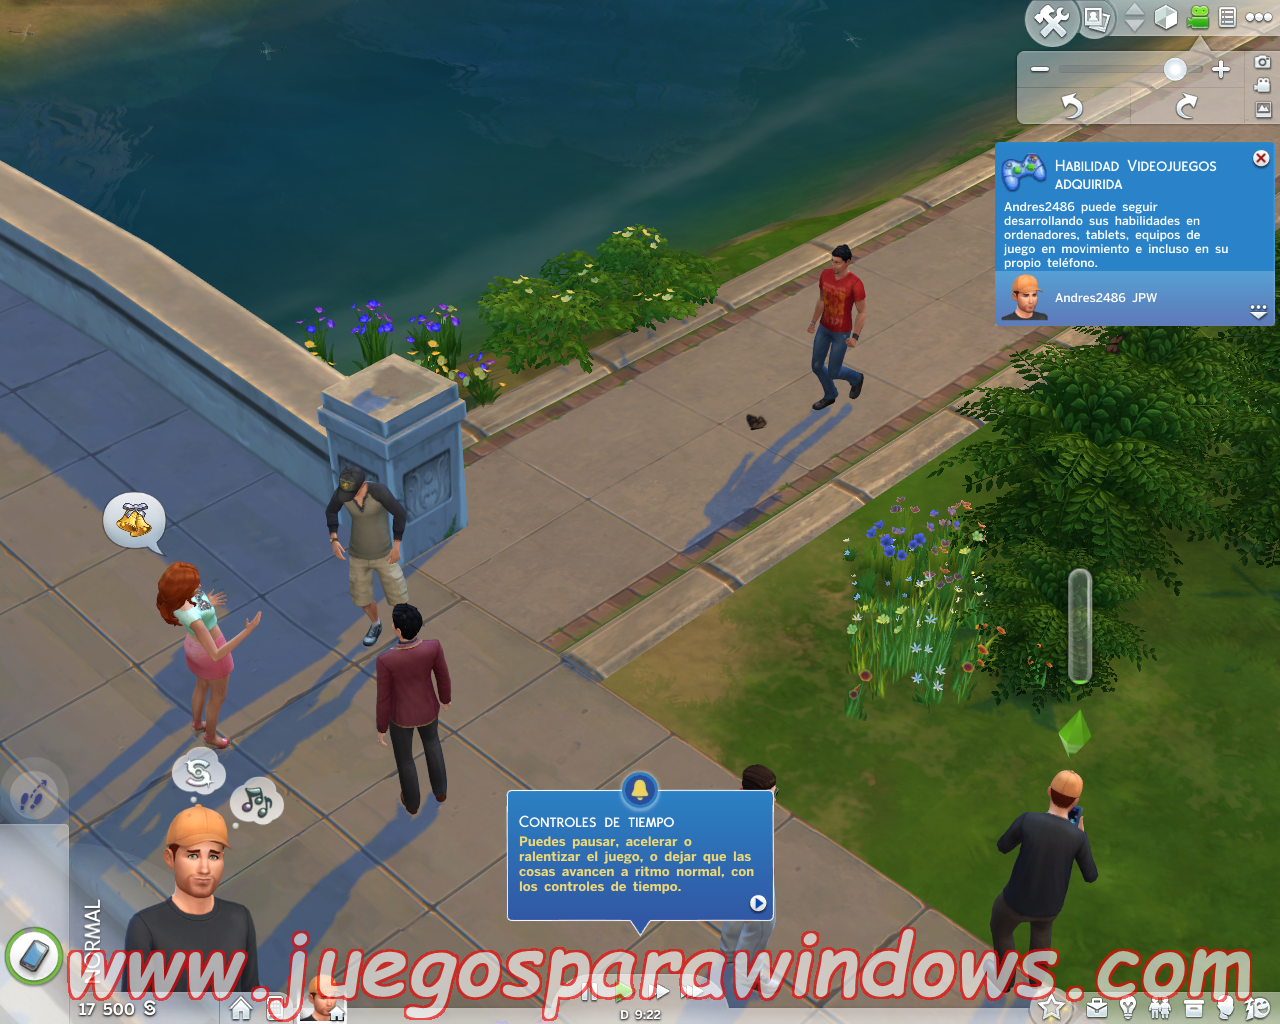 Los Sims 4 Digital Deluxe Edition ESPAÑOL PC Full + Update v1.4.83.1010 Incl DLC (RELOADED) 18